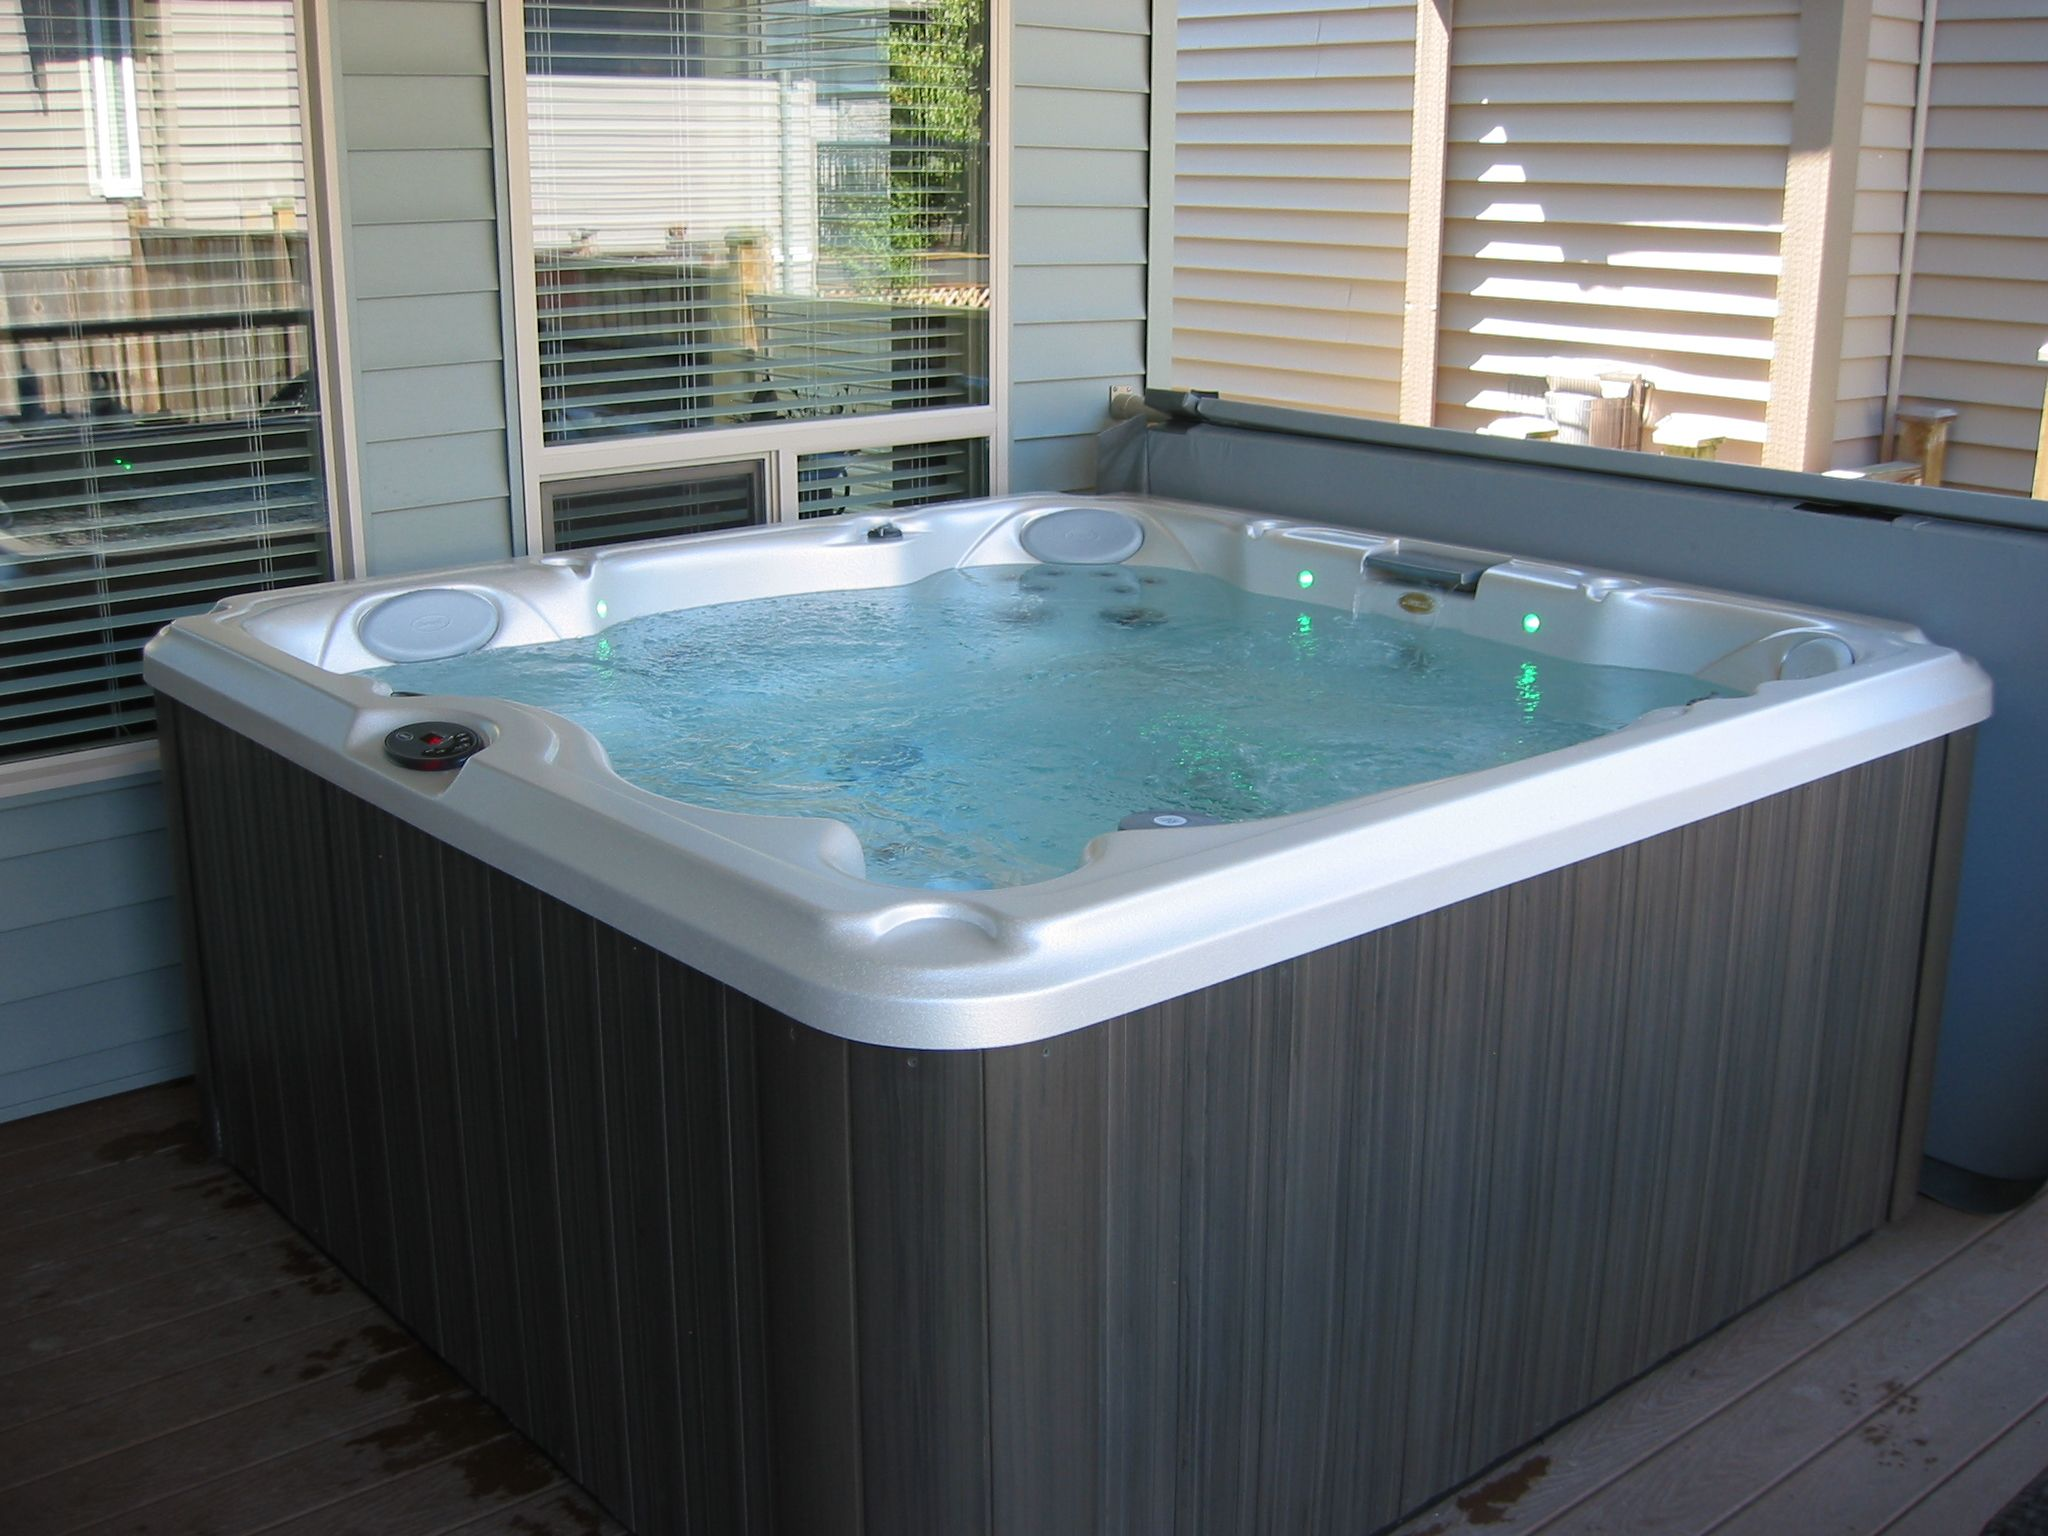 for luxurious home hot area outdoor remodeling tubs in design designs excellent tub divine with interior bay